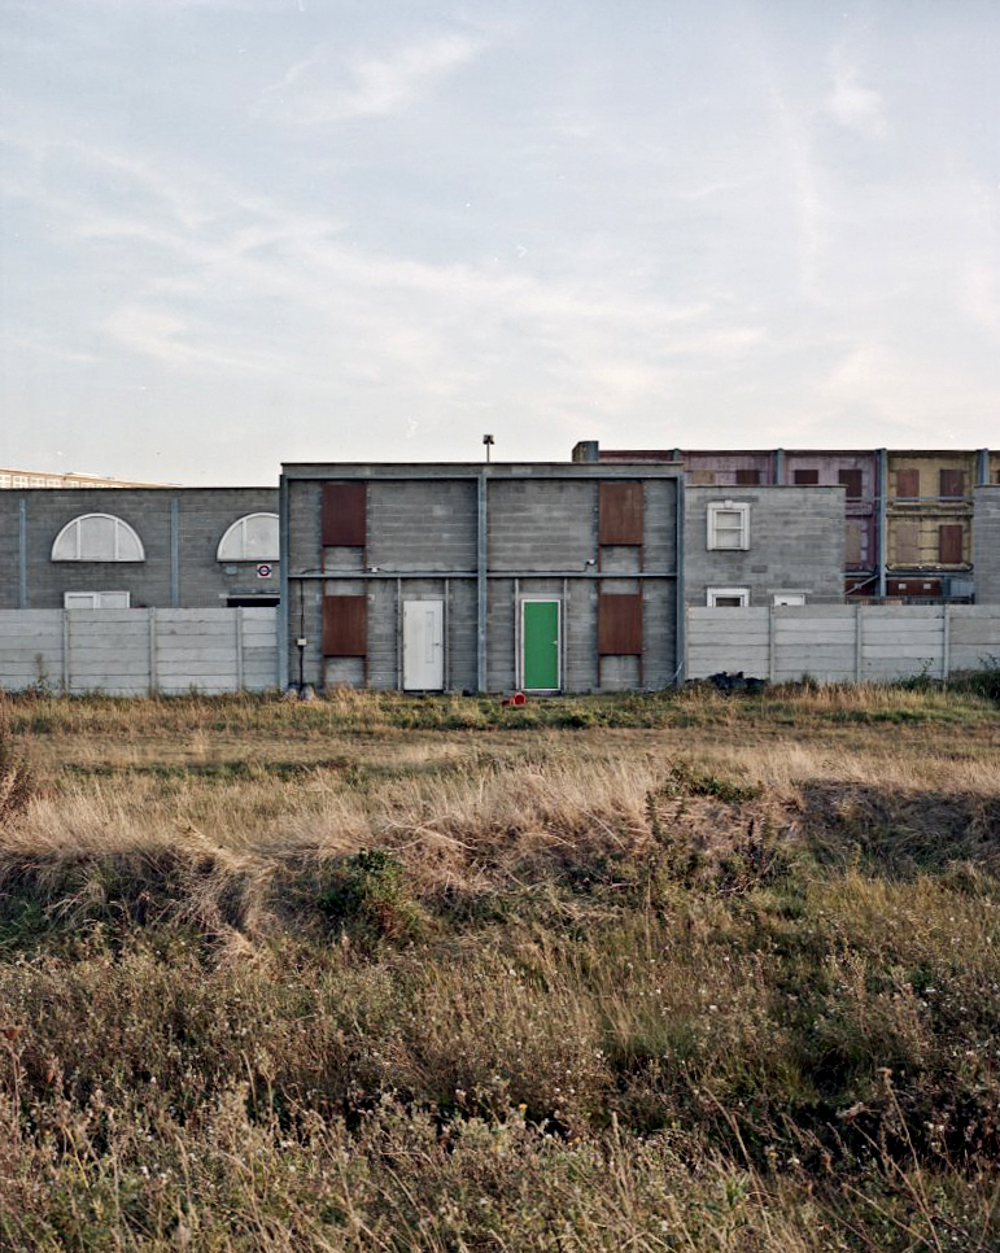 Untitled from SEEING IN THESE WALLS (MA final project)